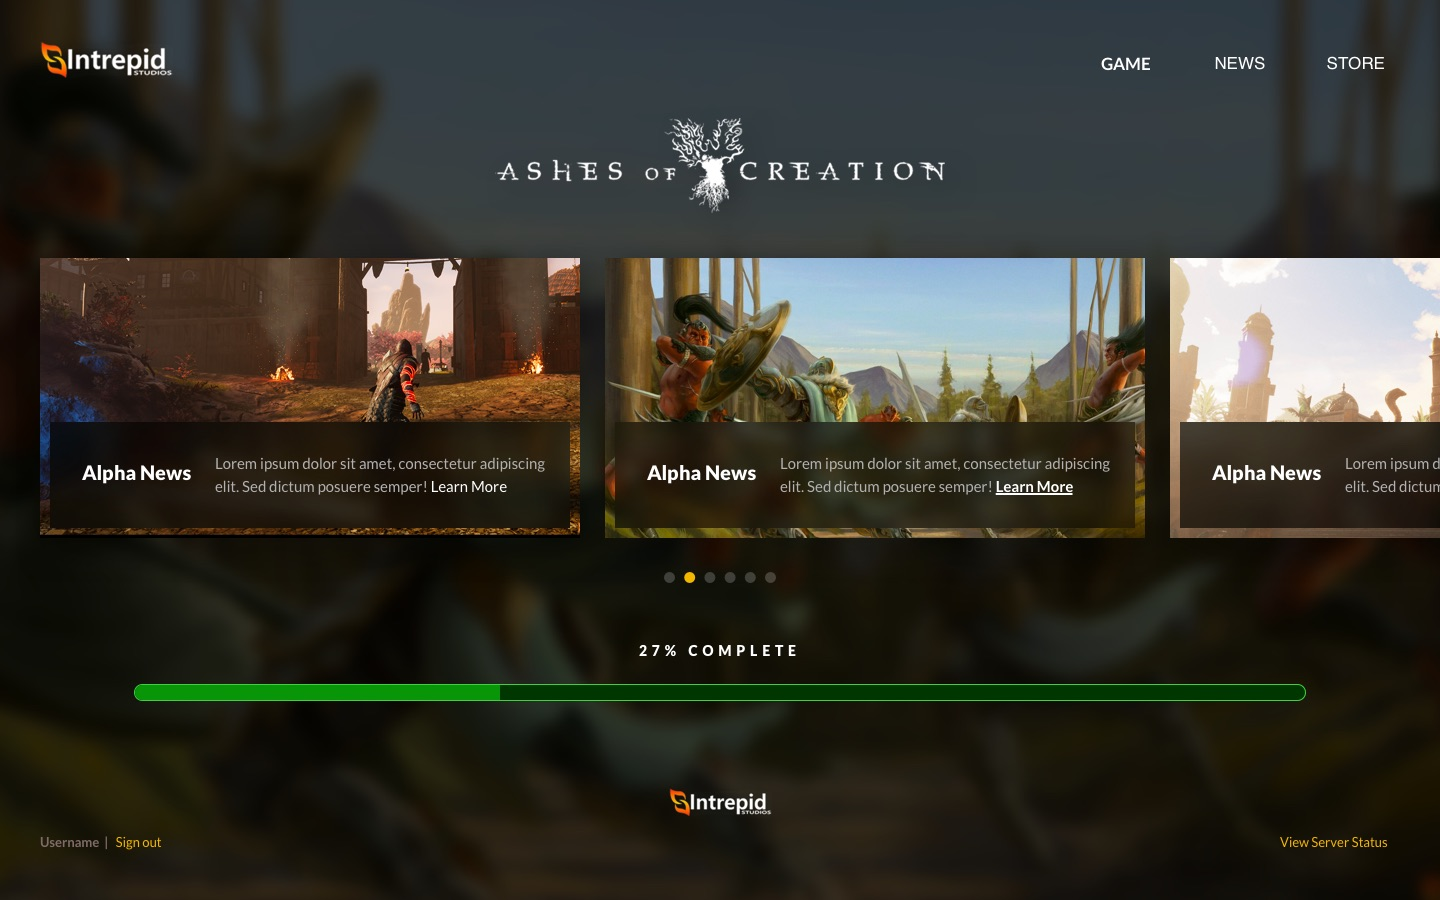 Modernistik Project: Ashes of Creation Game Launcher (ashes-of-creation-2)